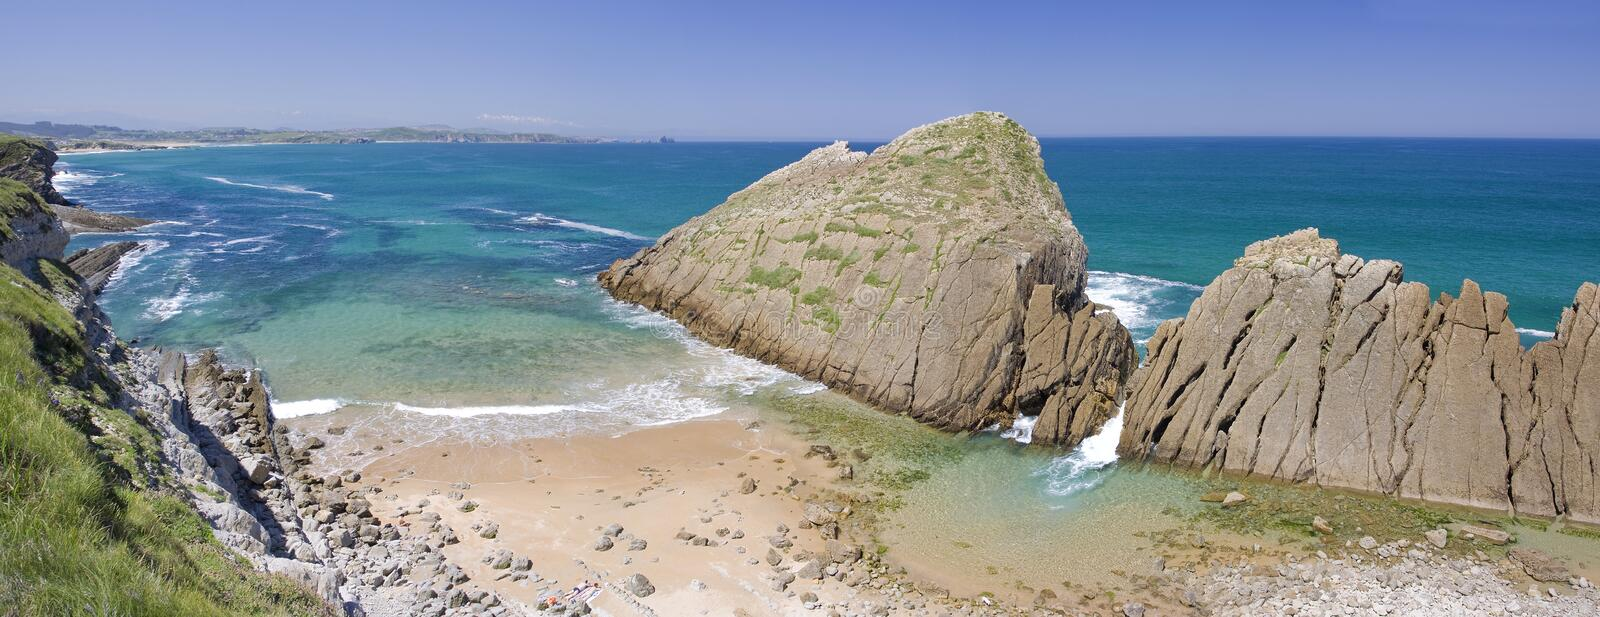 Download Cantabria coastline stock photo. Image of wild, coastline - 10046332